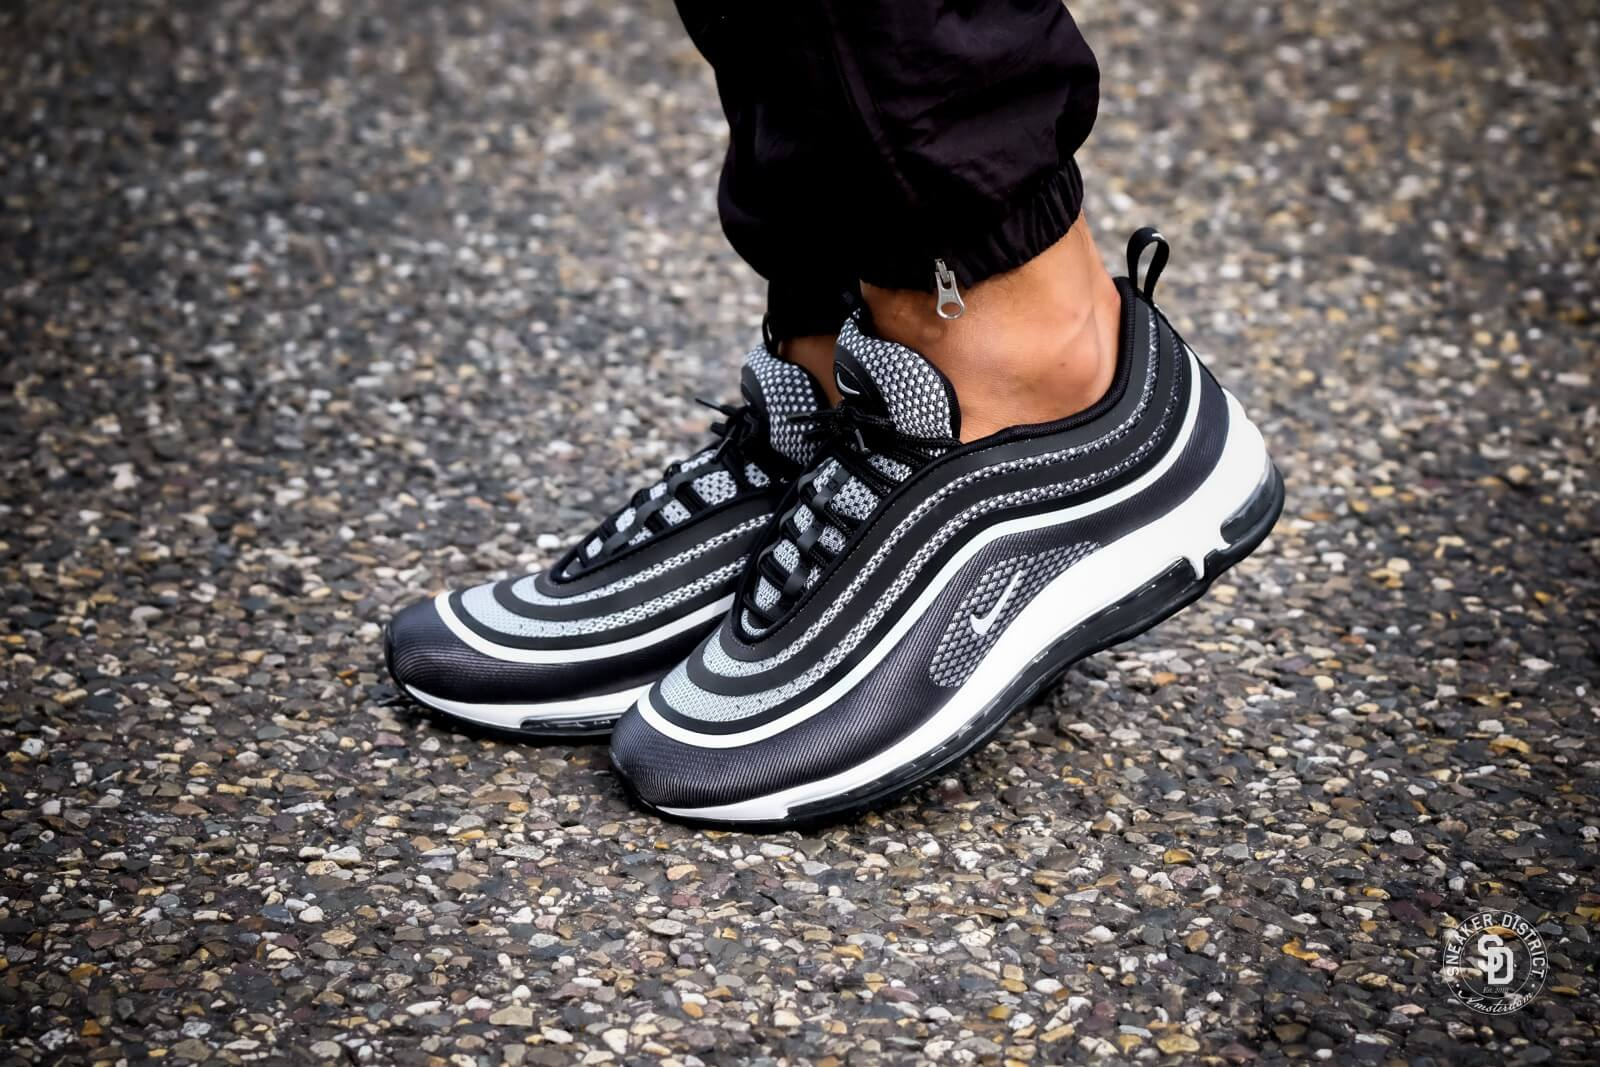 Amsterdam Gel Medium Nike Air Max 97 Ul '17 Black / Pure Platinum Anthracite